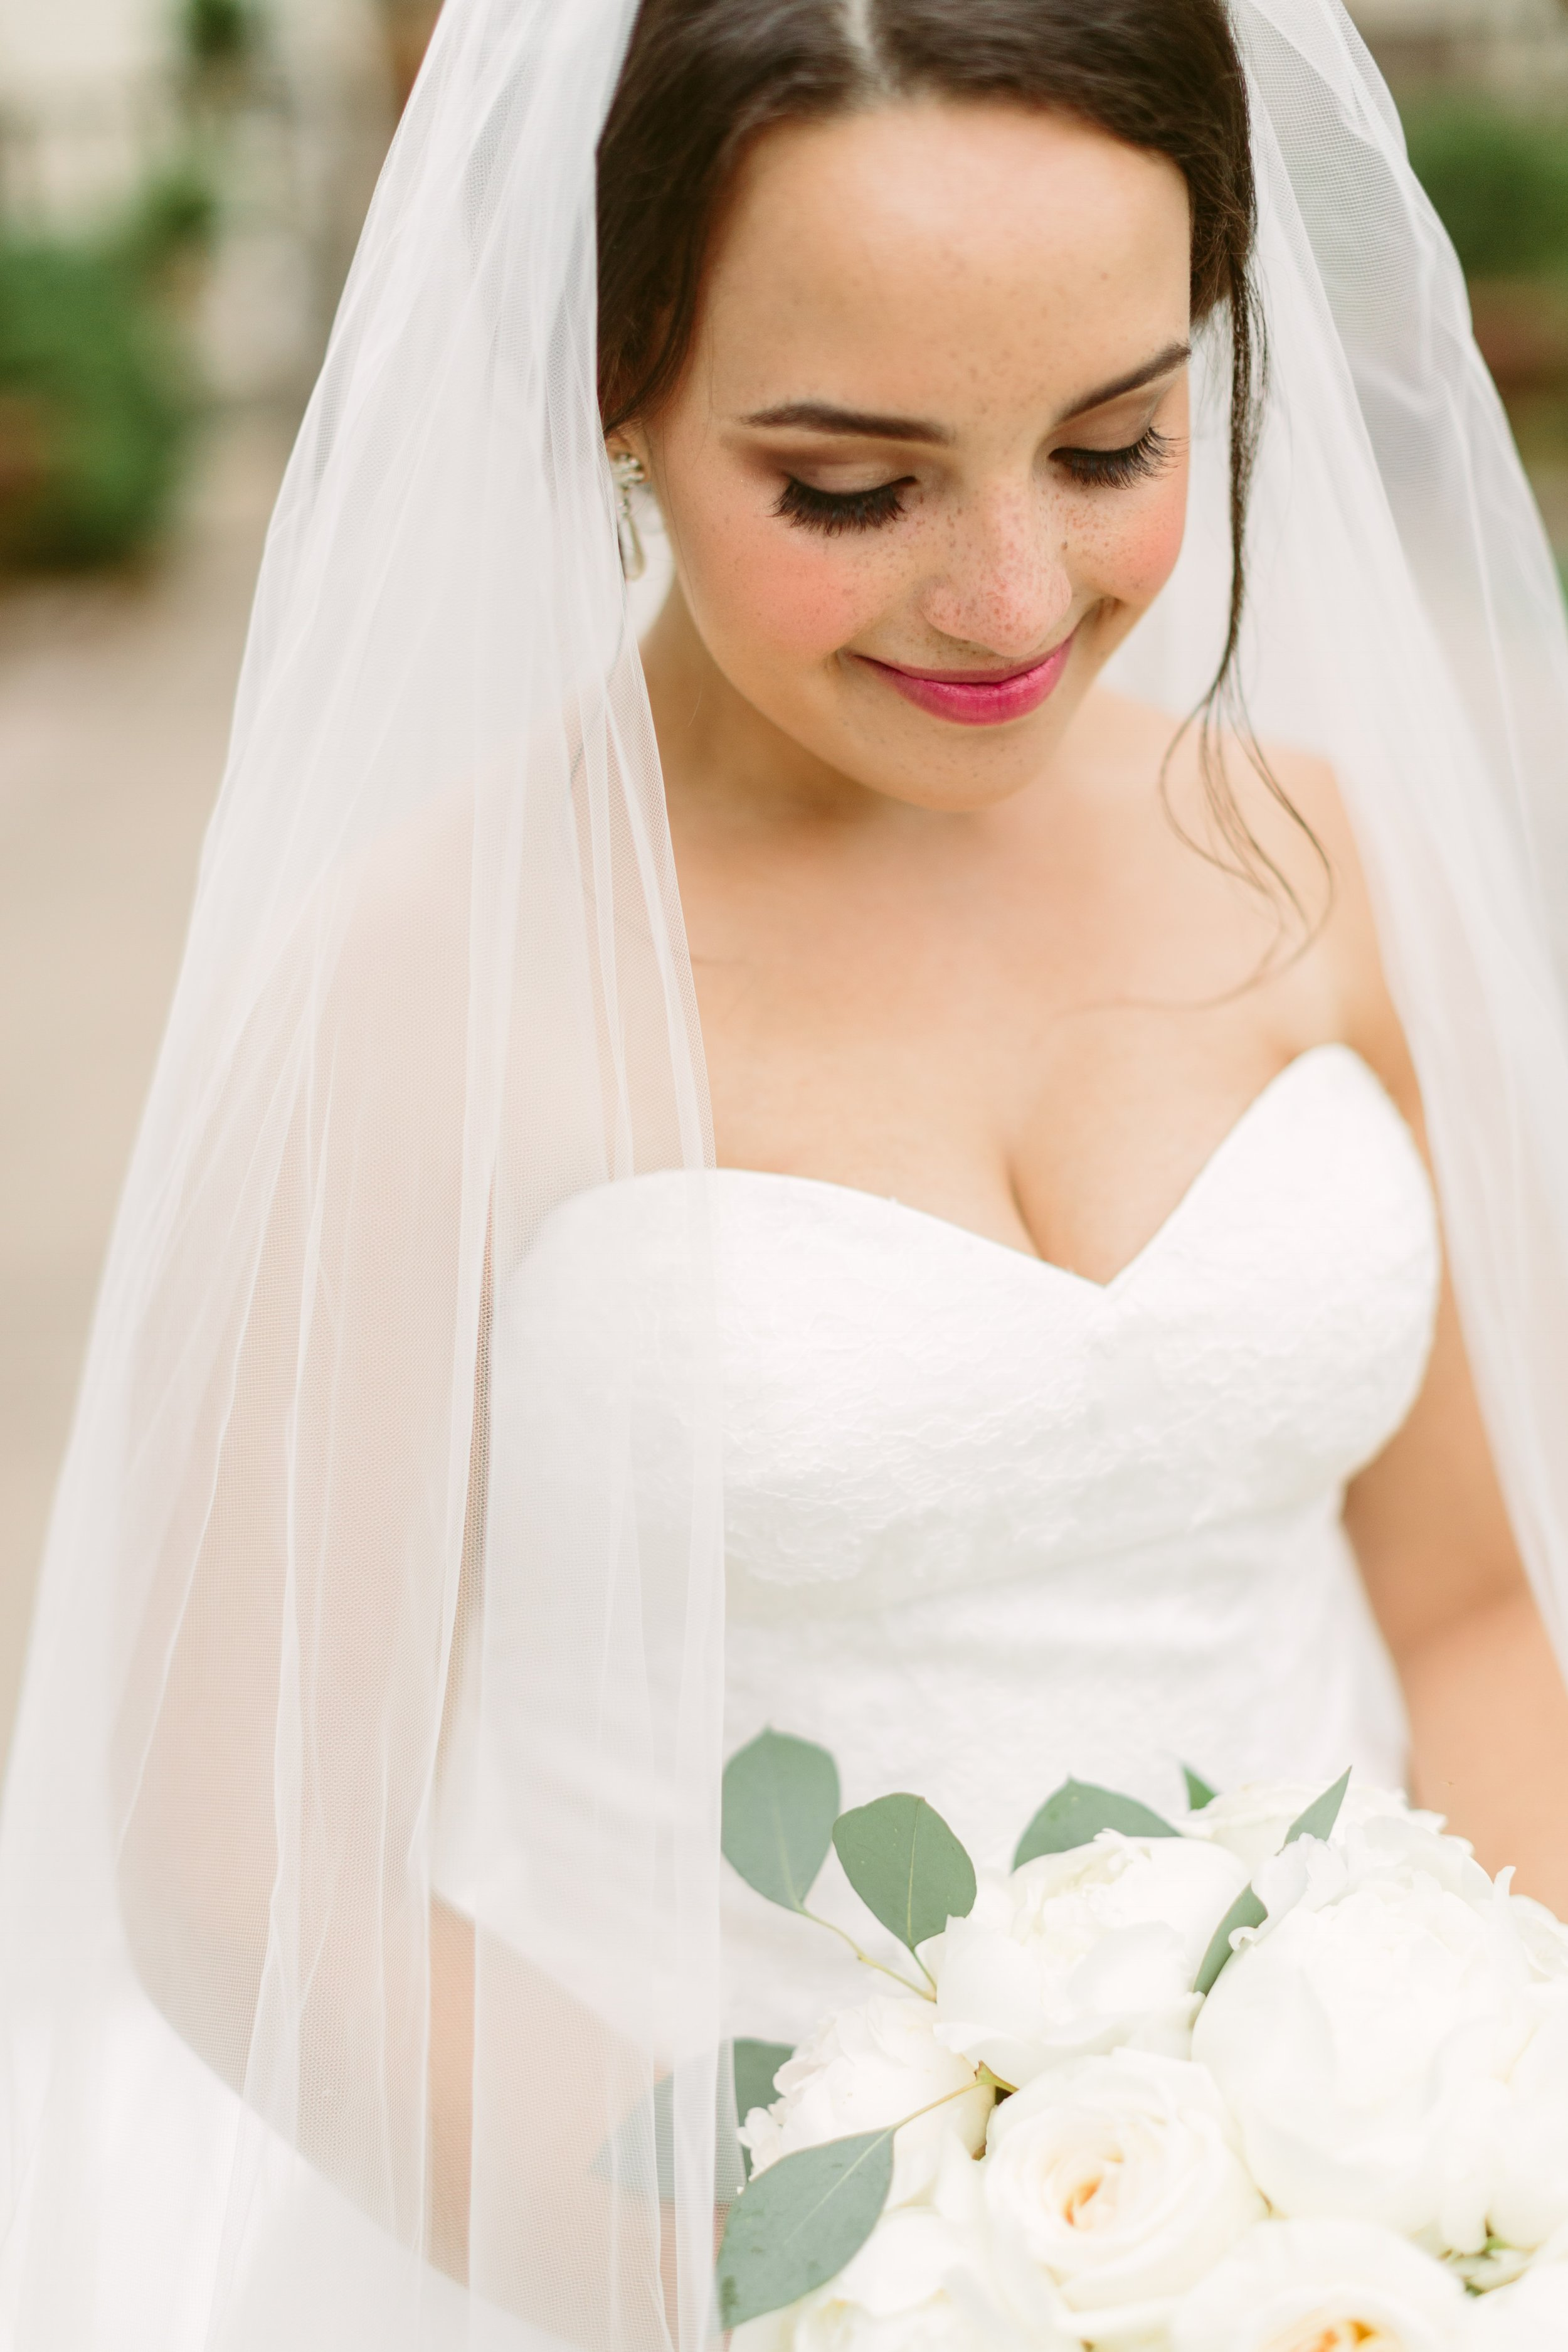 Professional Hair and Makeup for your Central Arkansas wedding Day